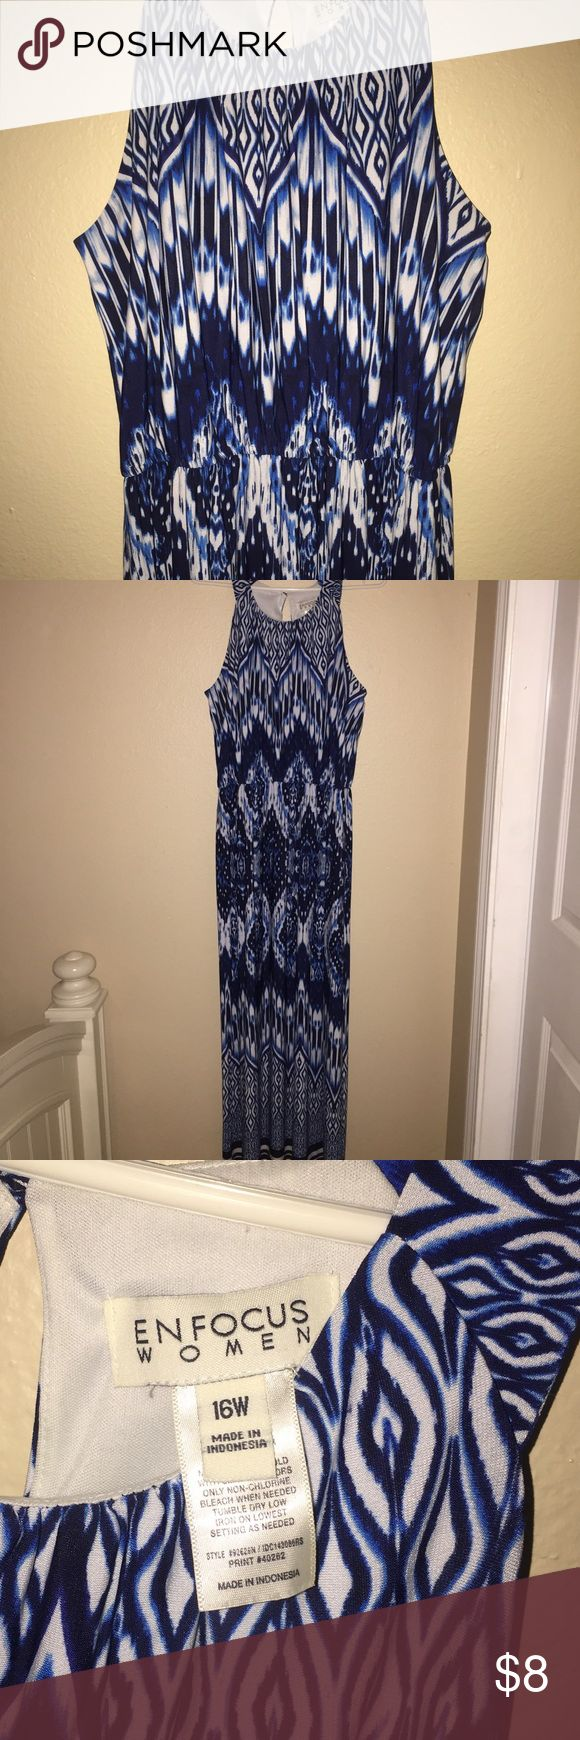 Navy Blue, Blue and White Long Dress navy blue and white dress, has an elastic waistband. if you would like to see it on, please leave me a comment down below! Enfocus Women Dresses